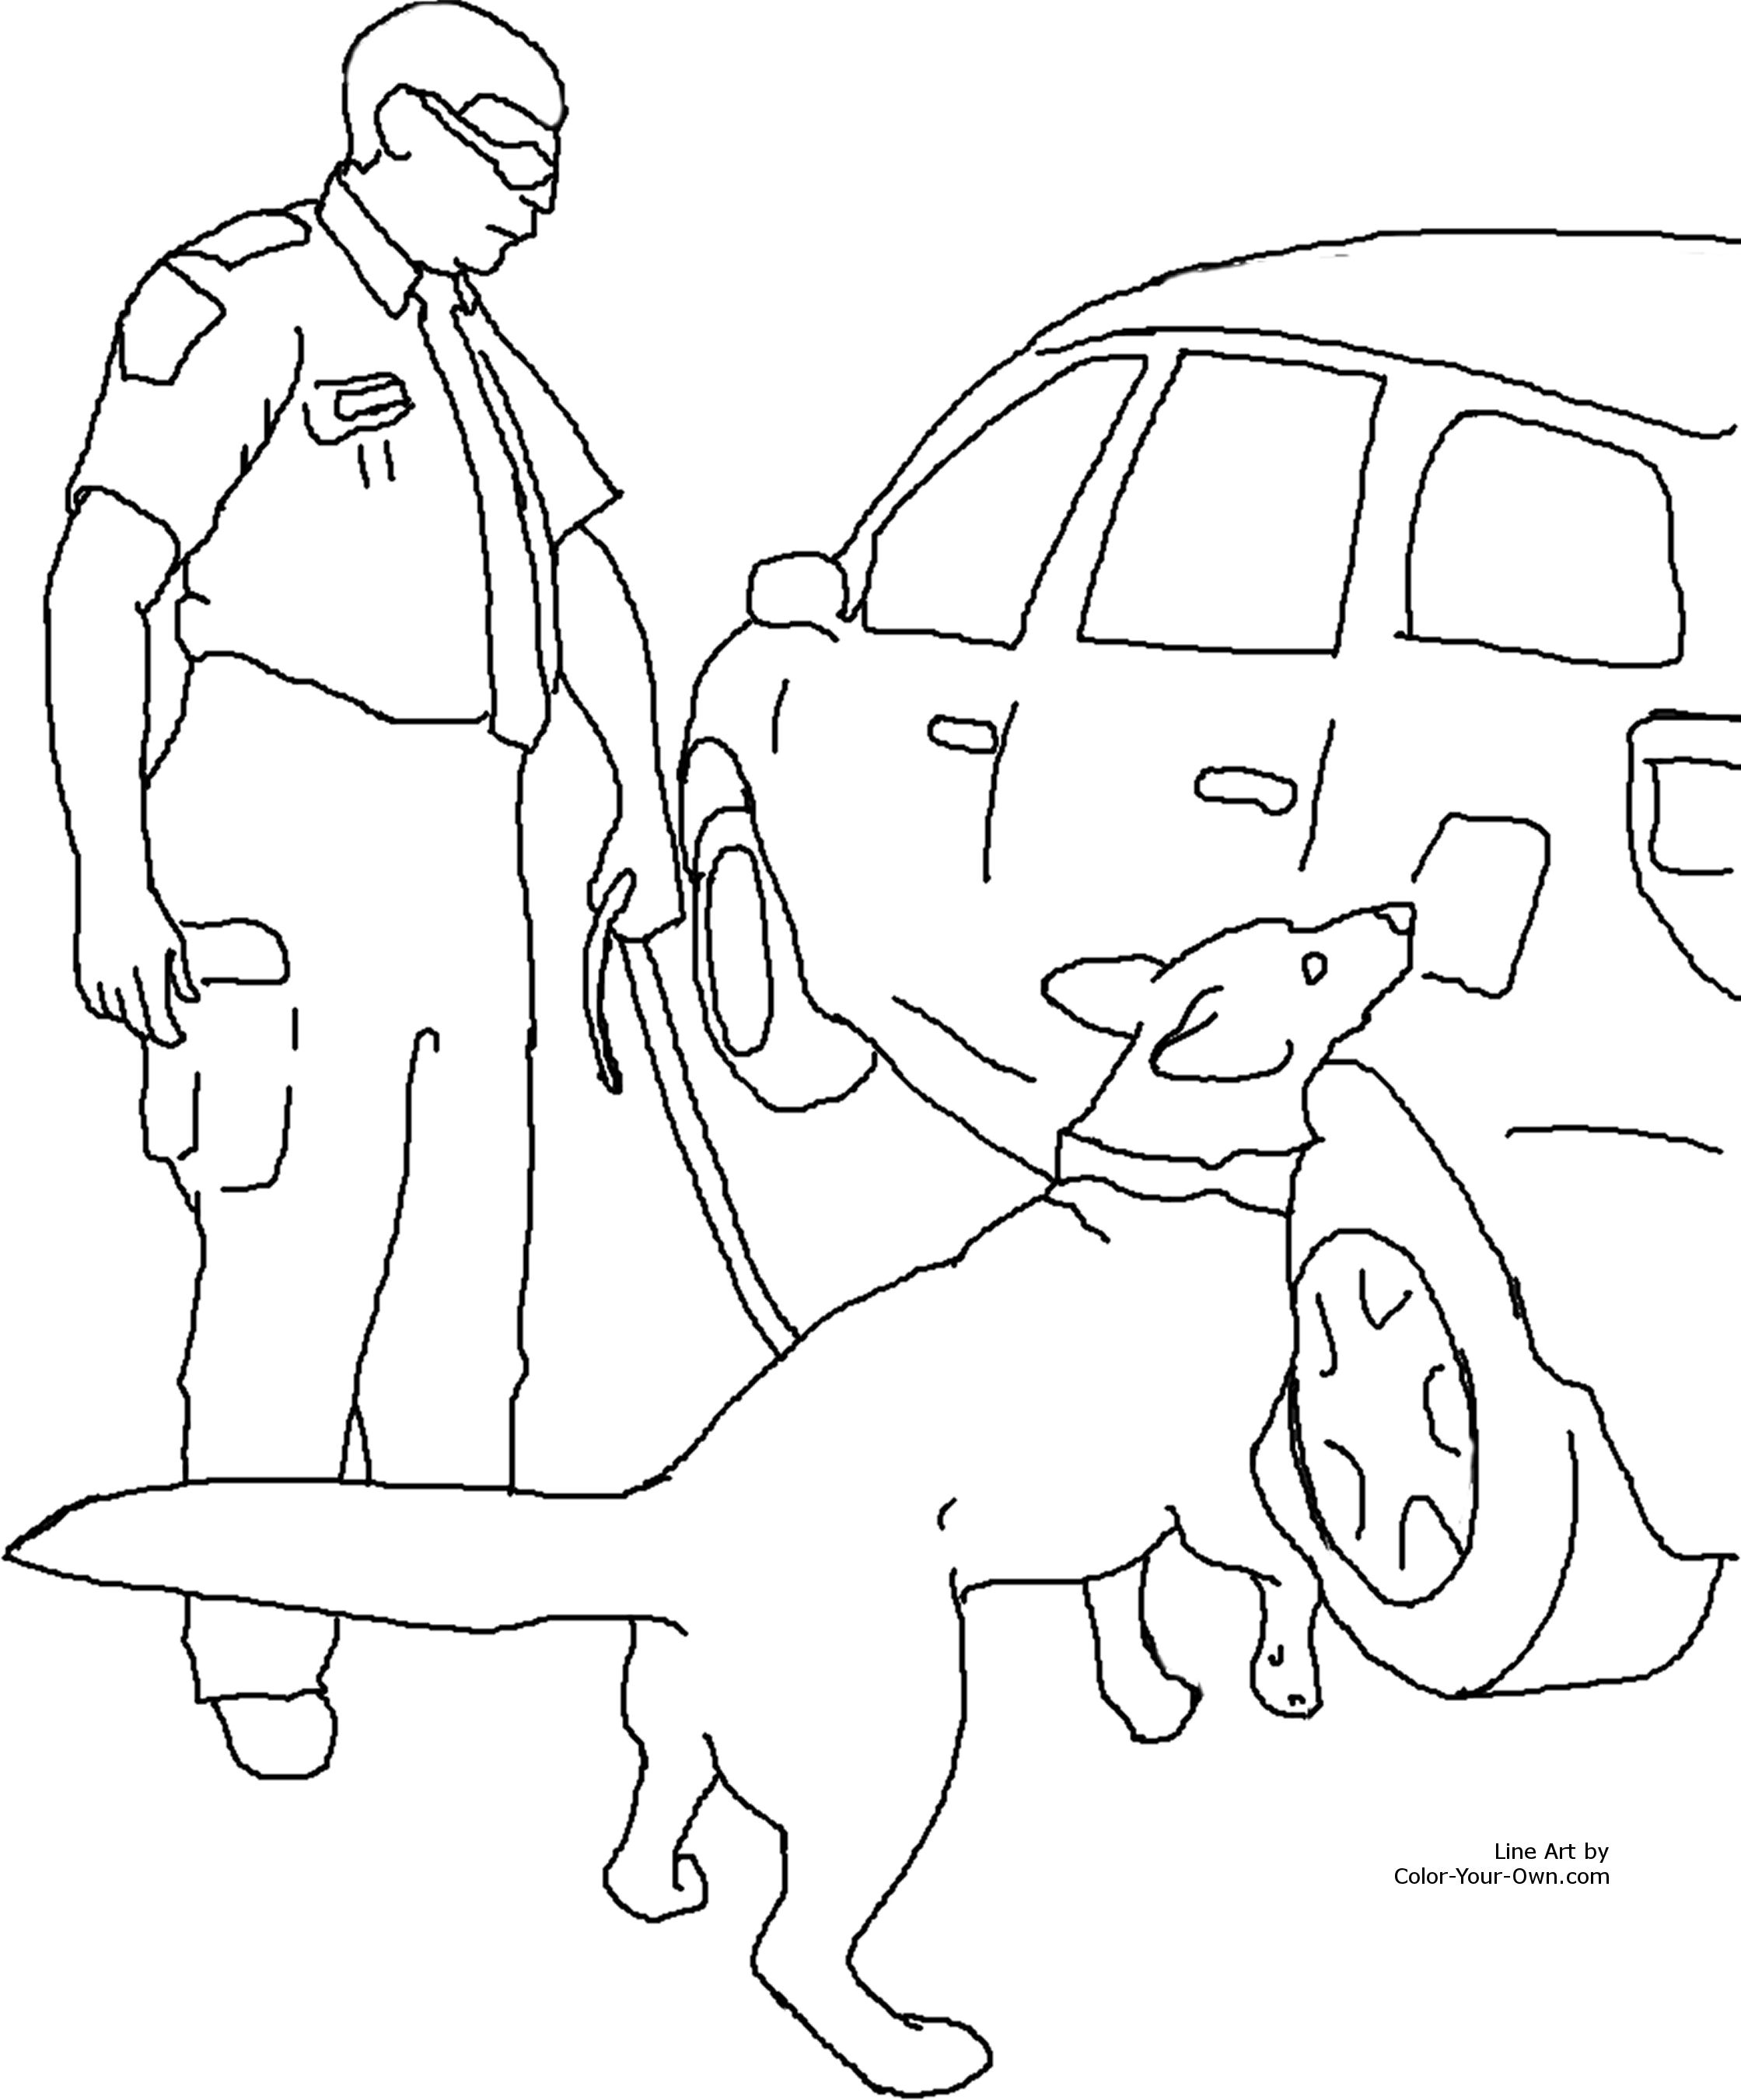 coloring pages of drugs - photo#12